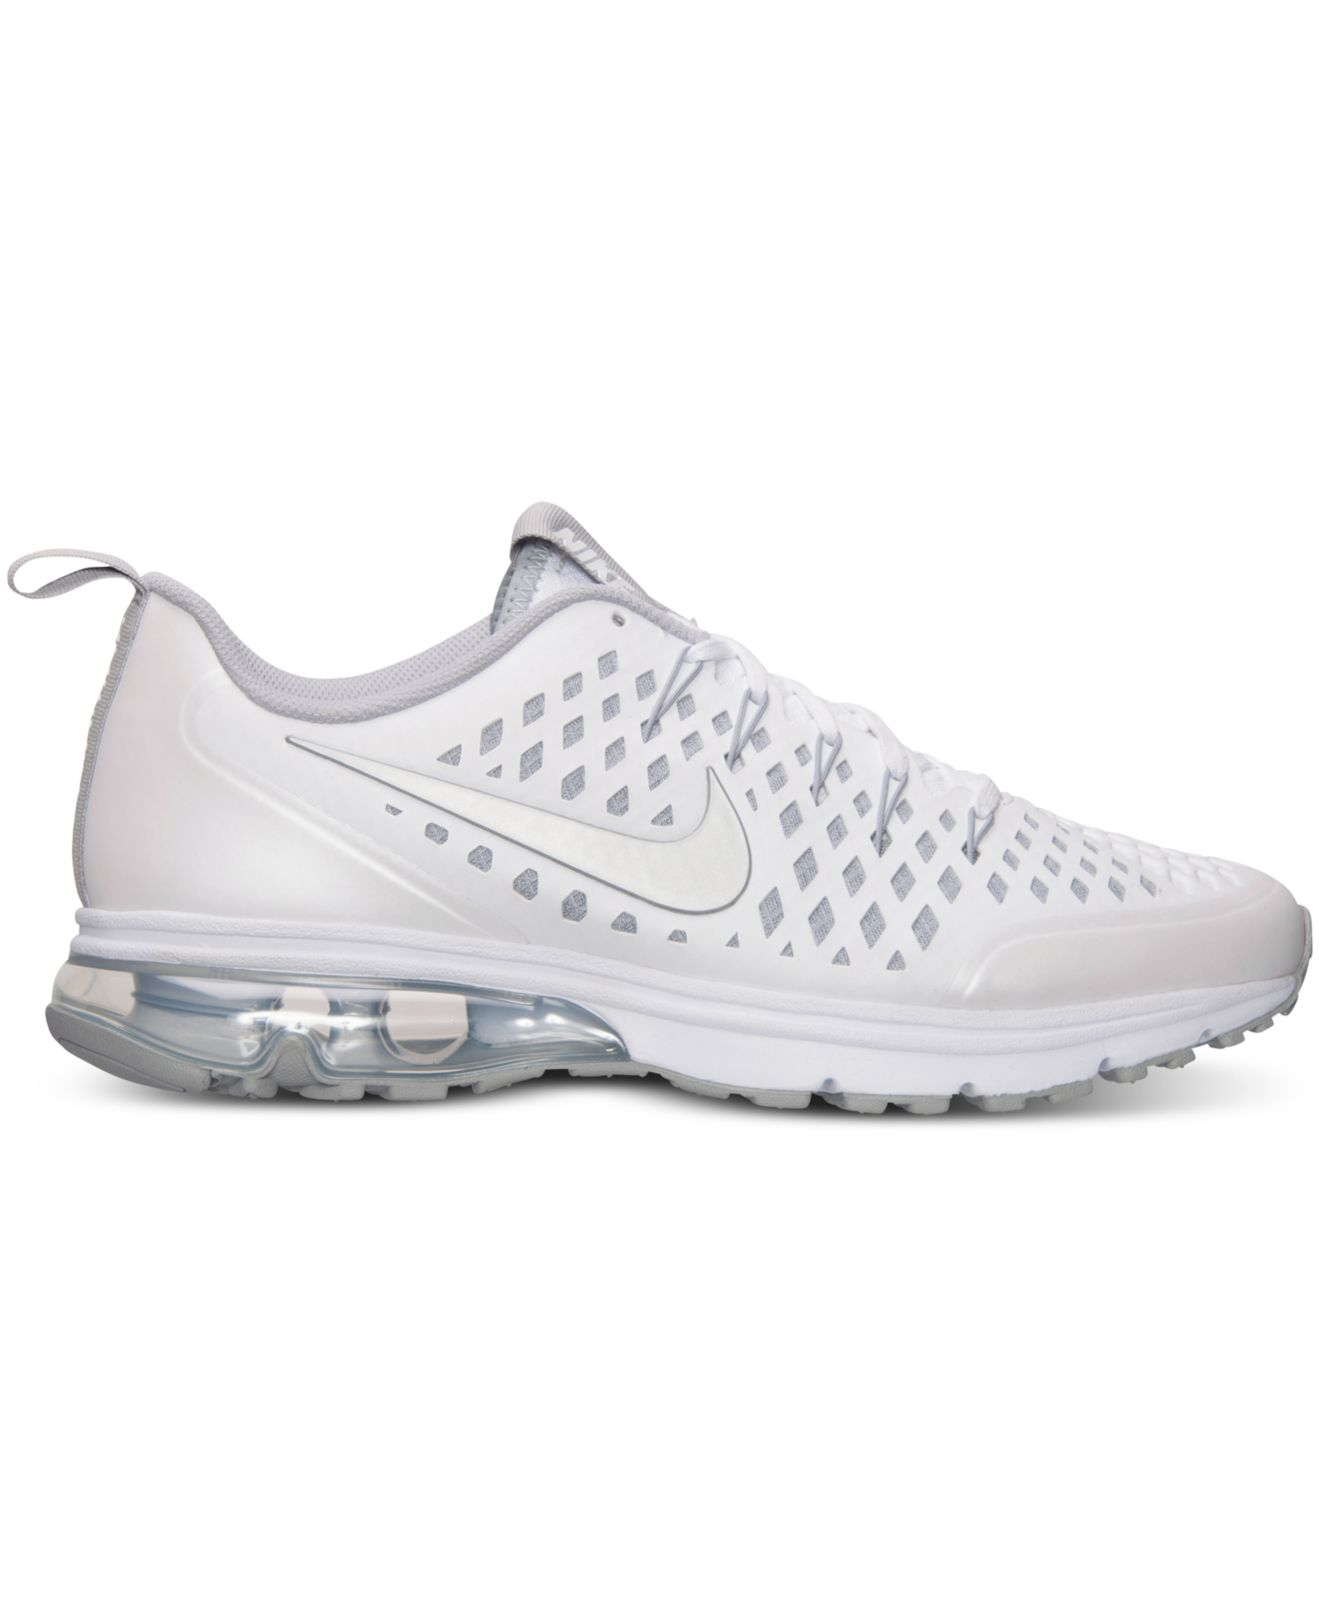 652881e20eeb7 ... france lyst nike mens air max supreme 3 running sneakers from finish  58343 2cfe6